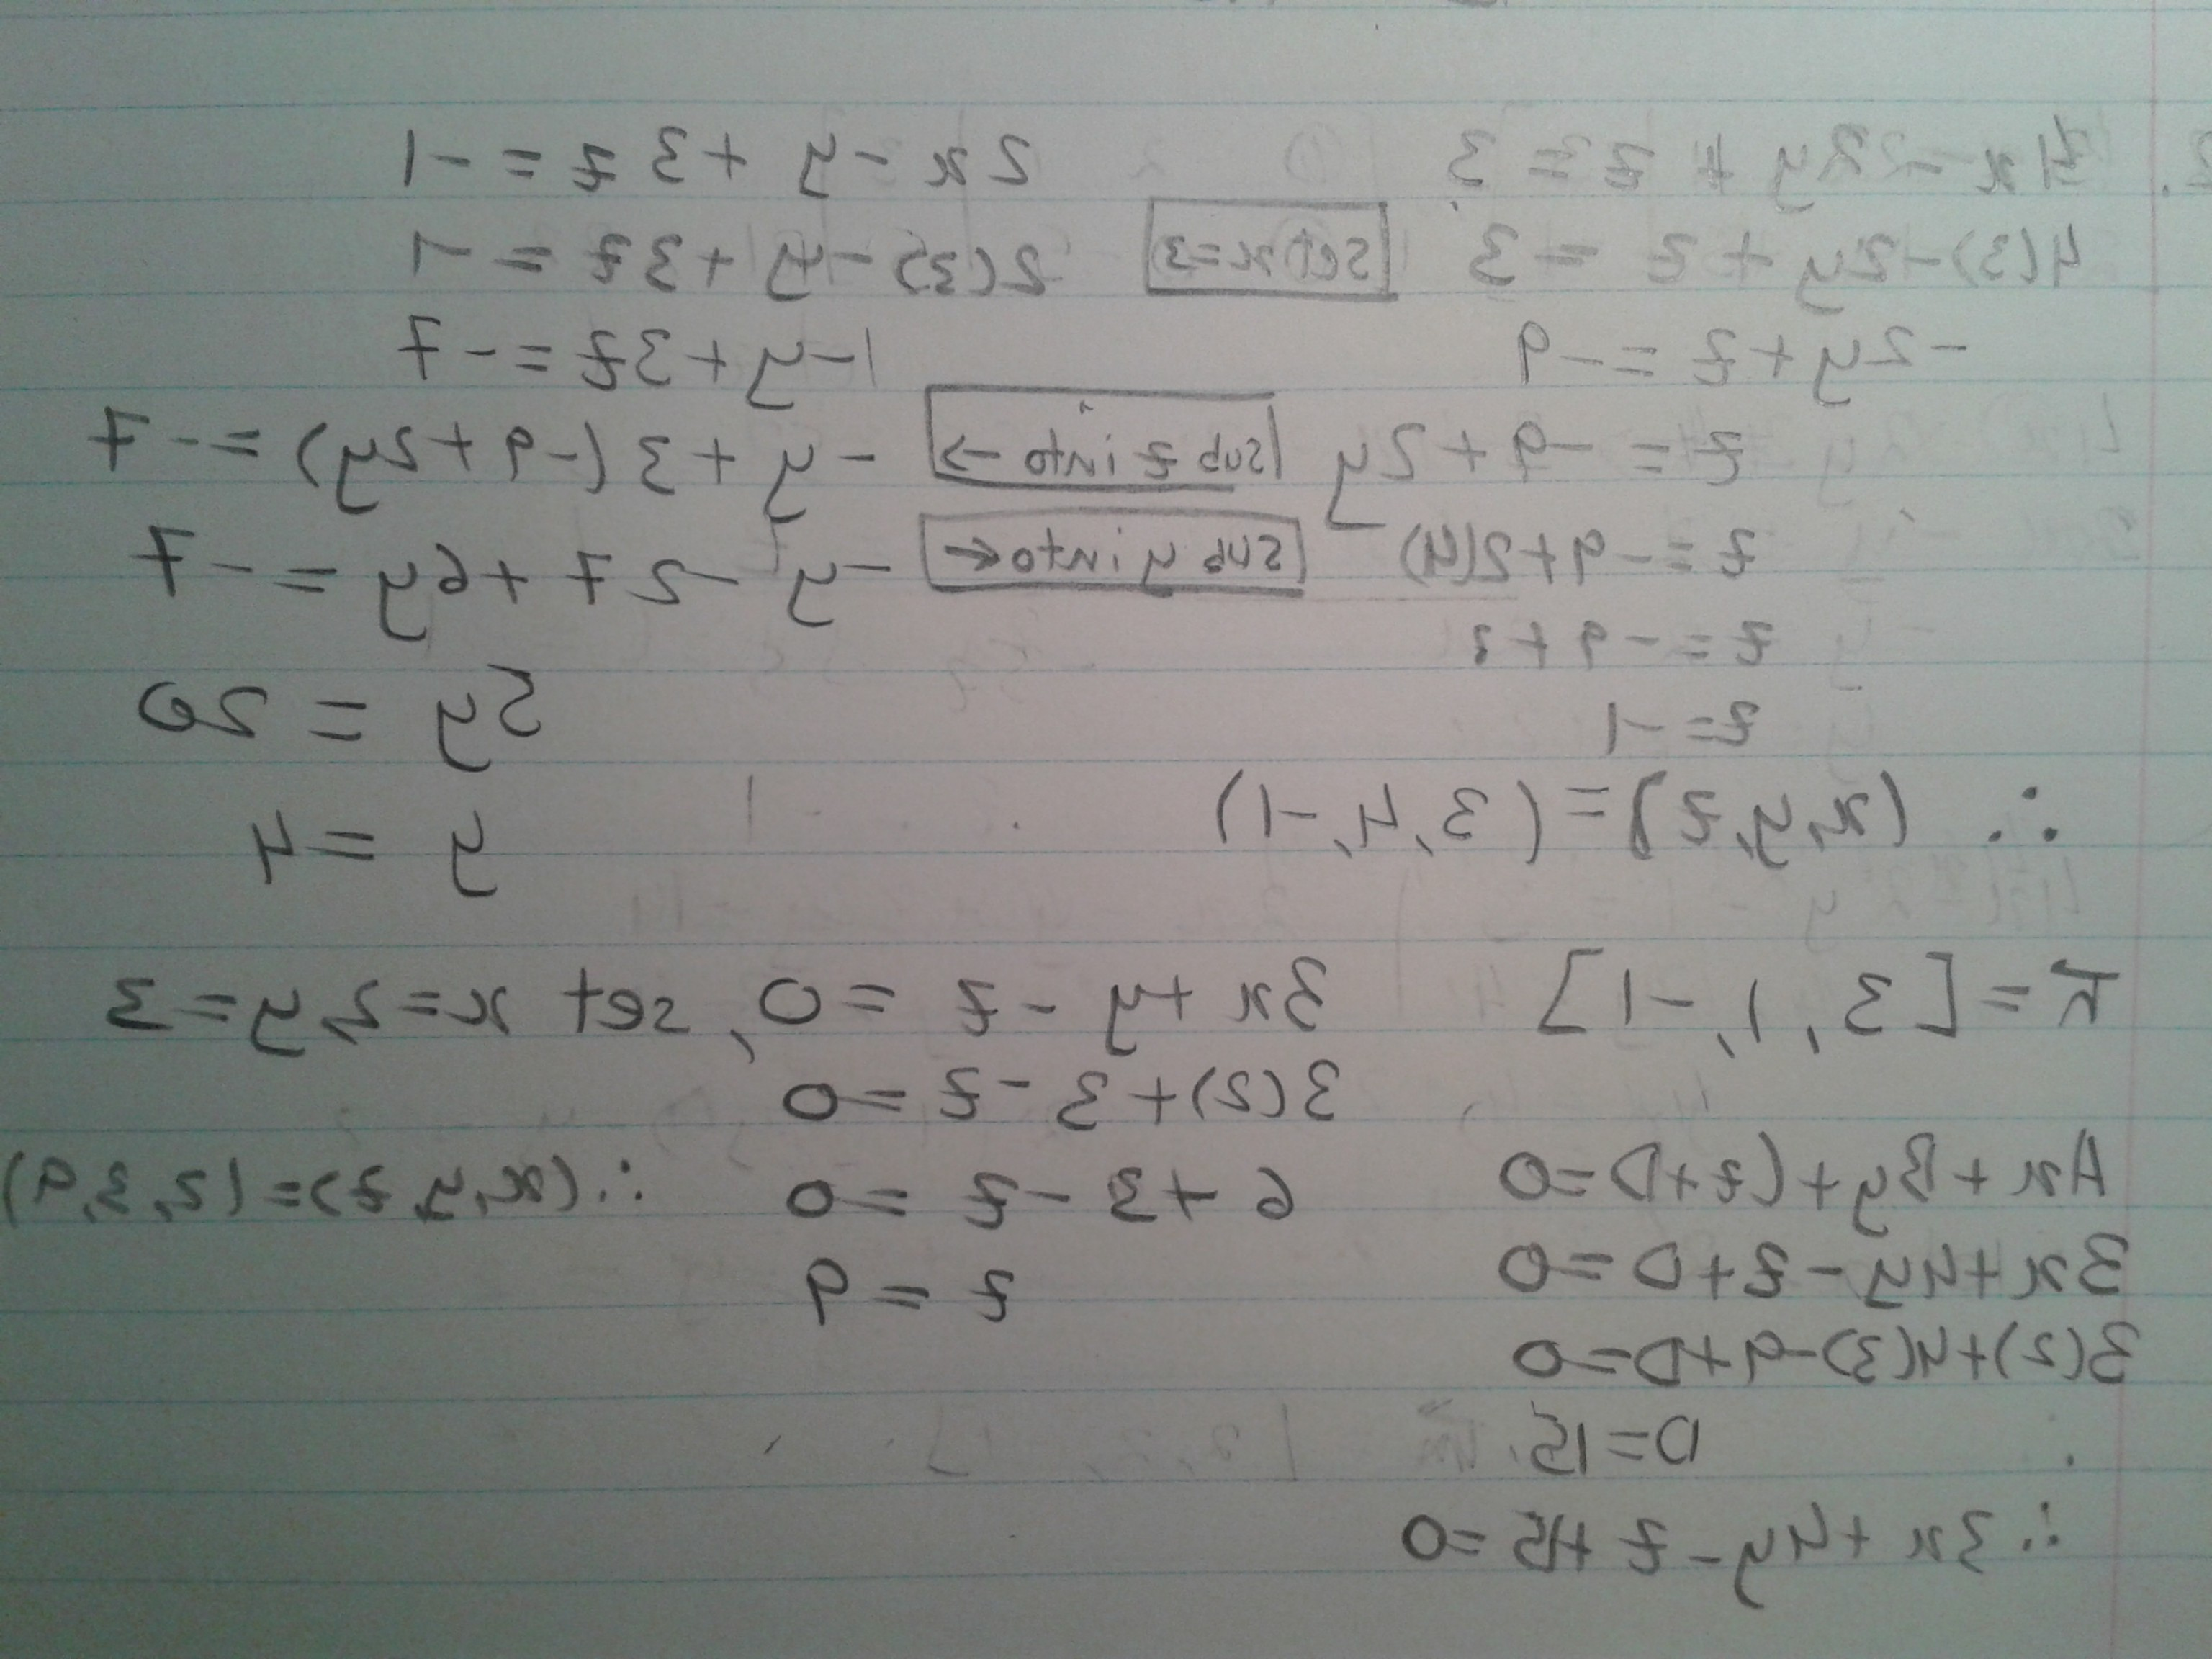 Point Of A Unit Normal Vector A Vector Intersects: Find The Equation Of The Plane That Passes Through The Line Of Intersection Of T